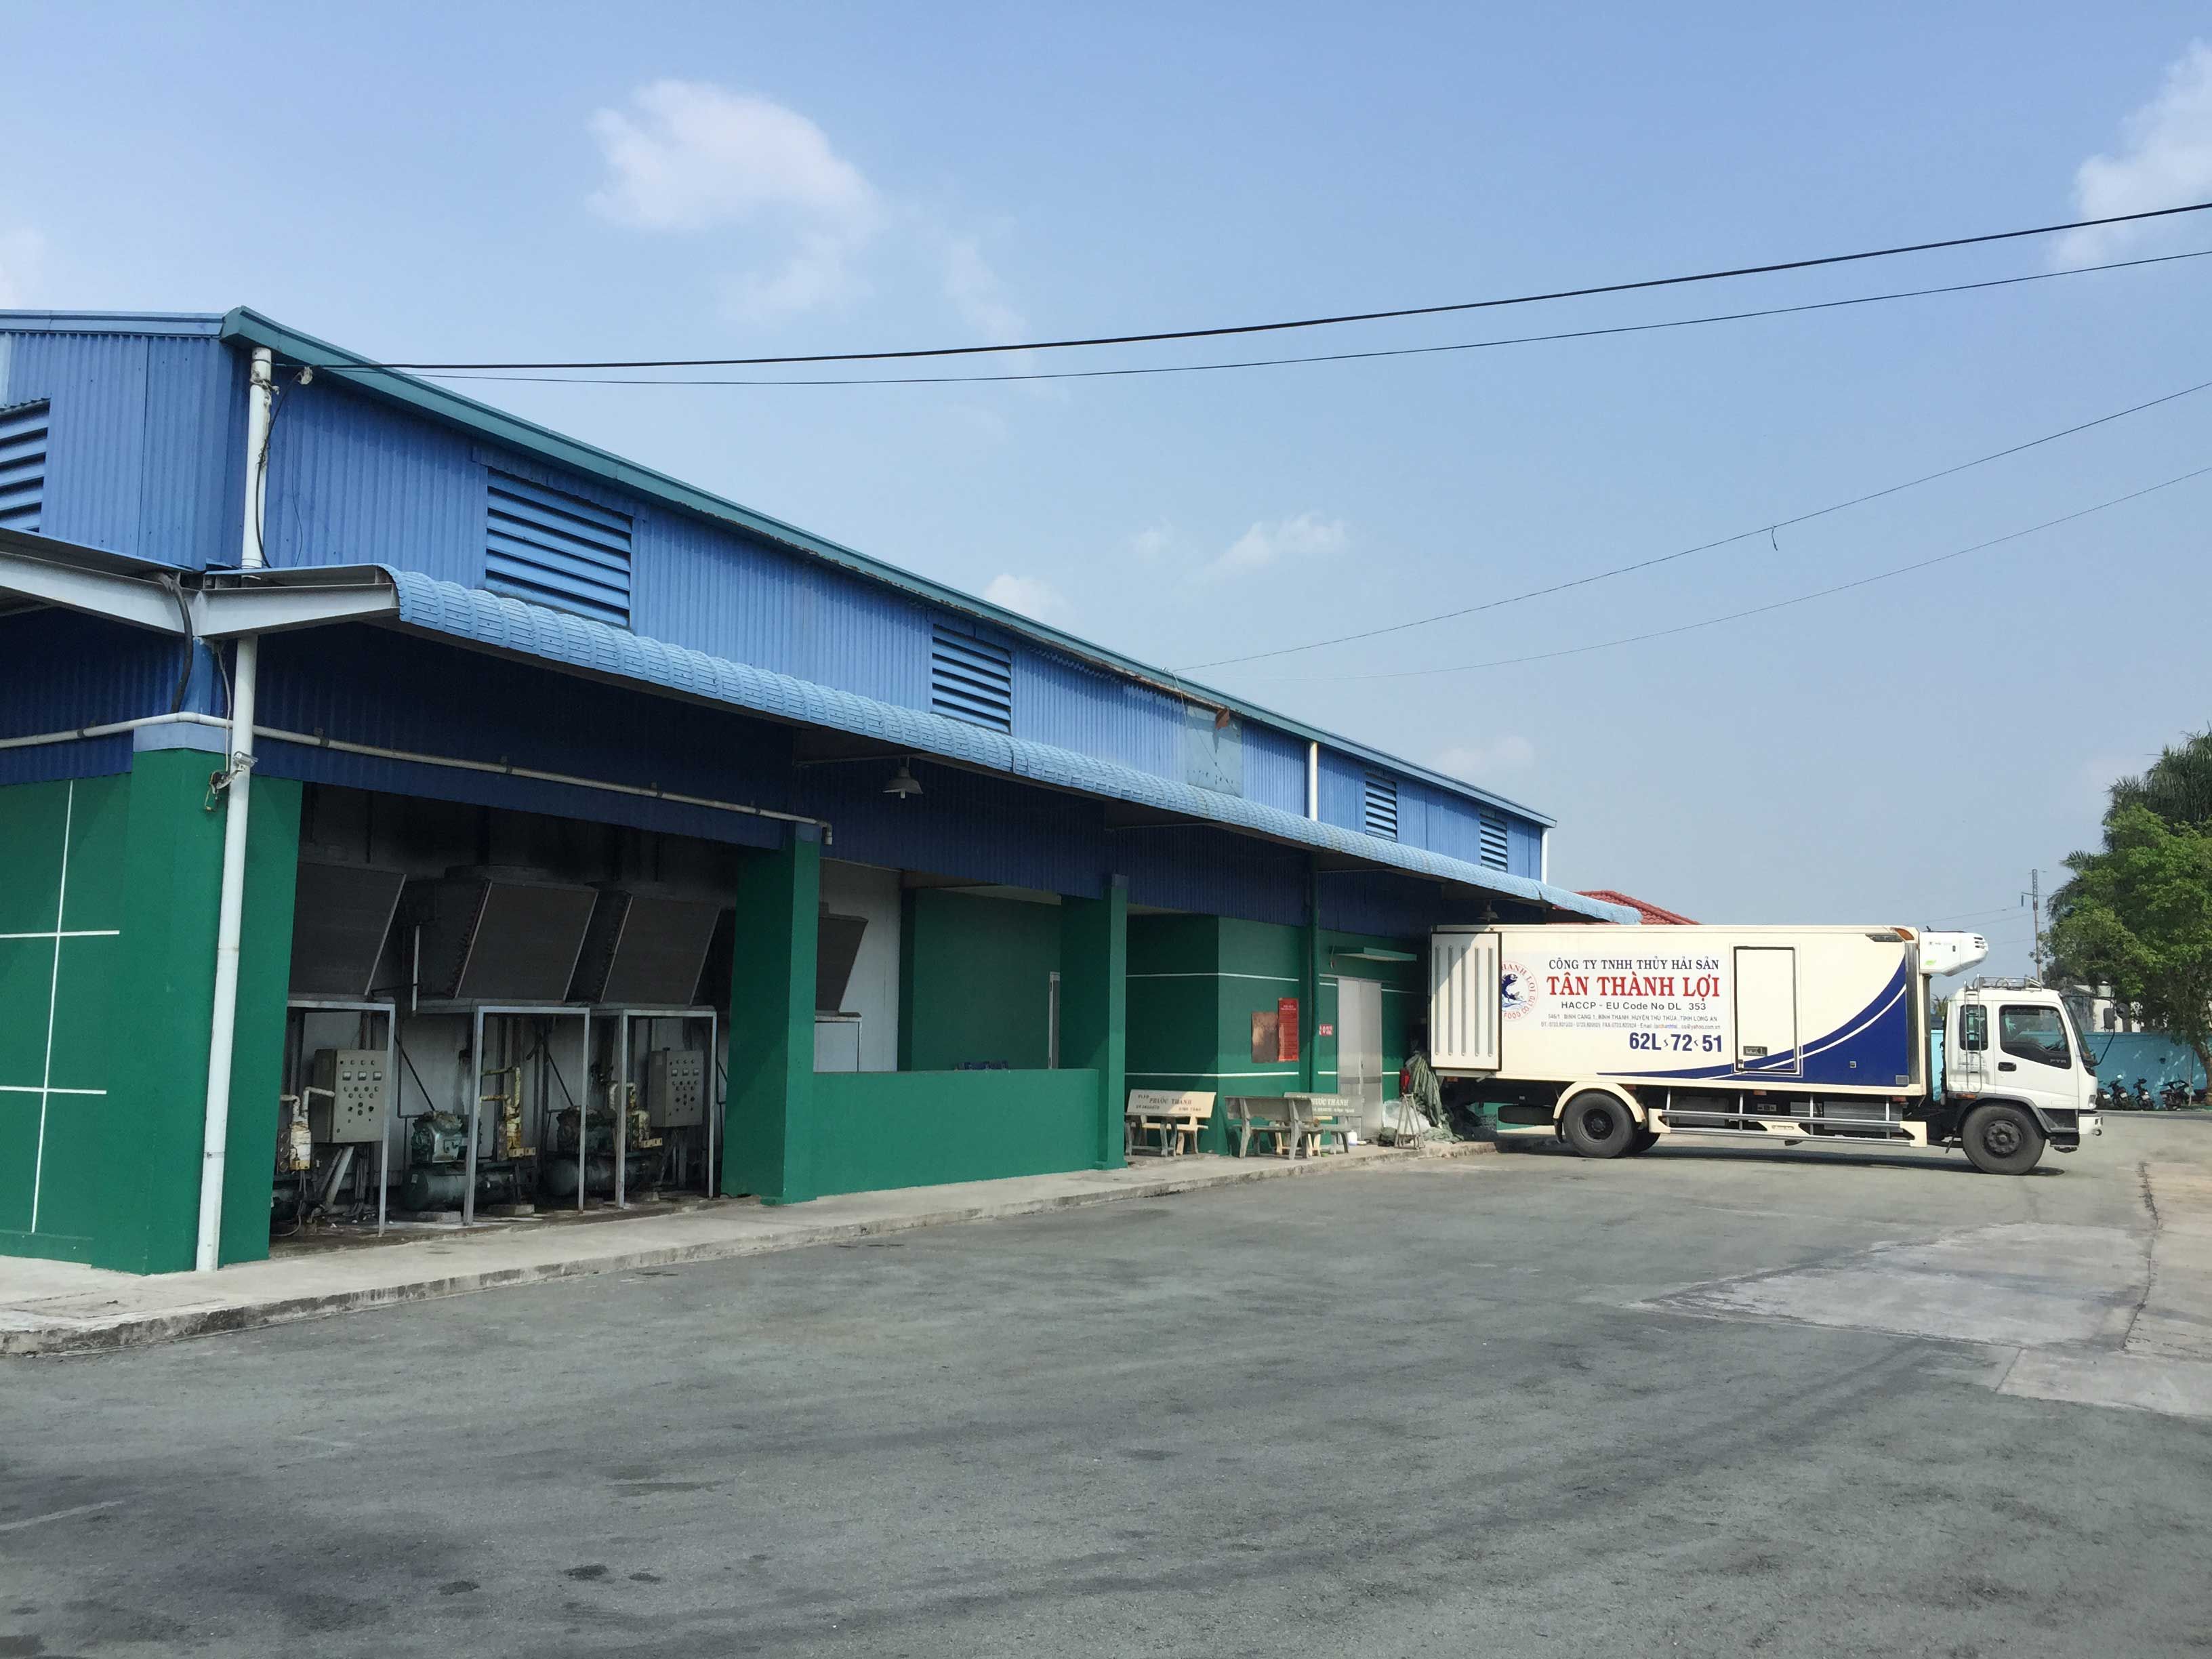 TAN THANH LOI FROZEN FOOD Co., Ltd